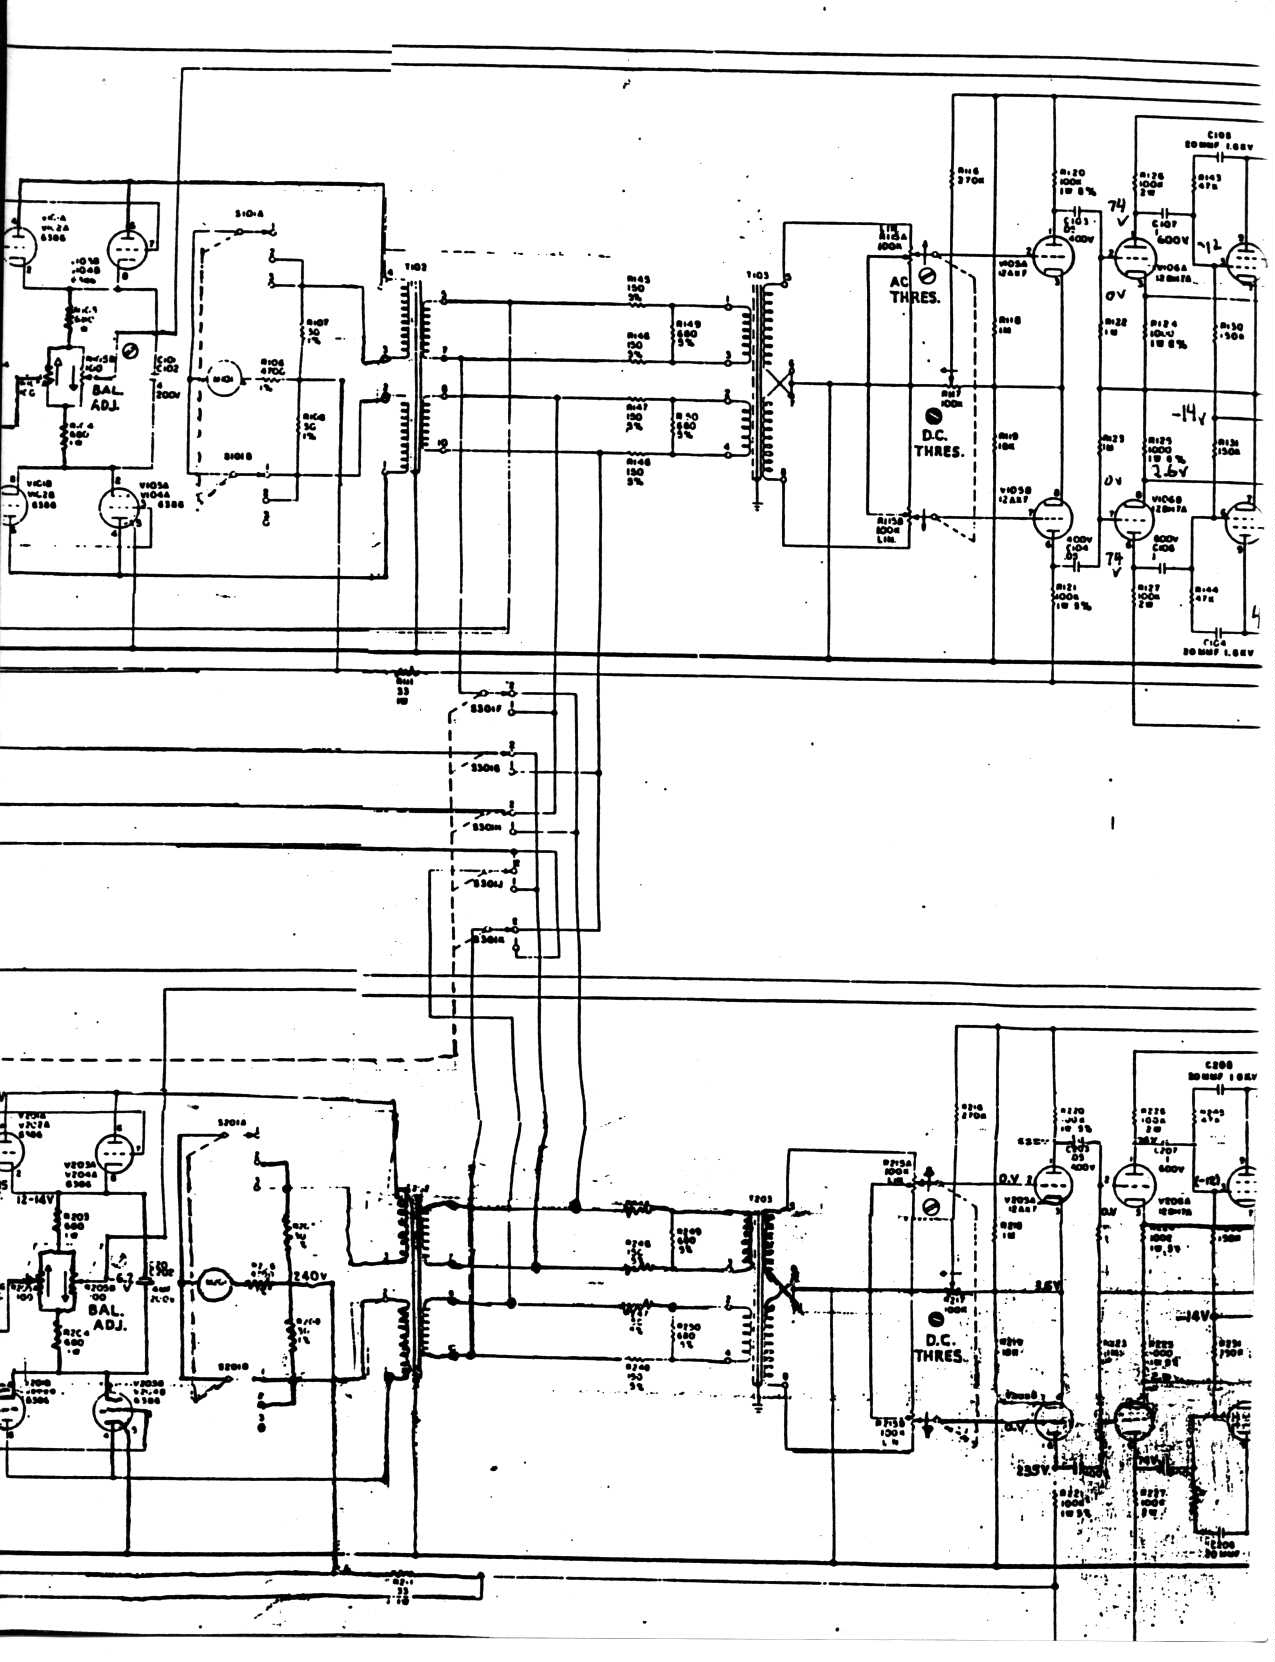 jbl eon 315 wiring diagram - auto electrical wiring diagram toyota jbl amplifier wiring diagram #6